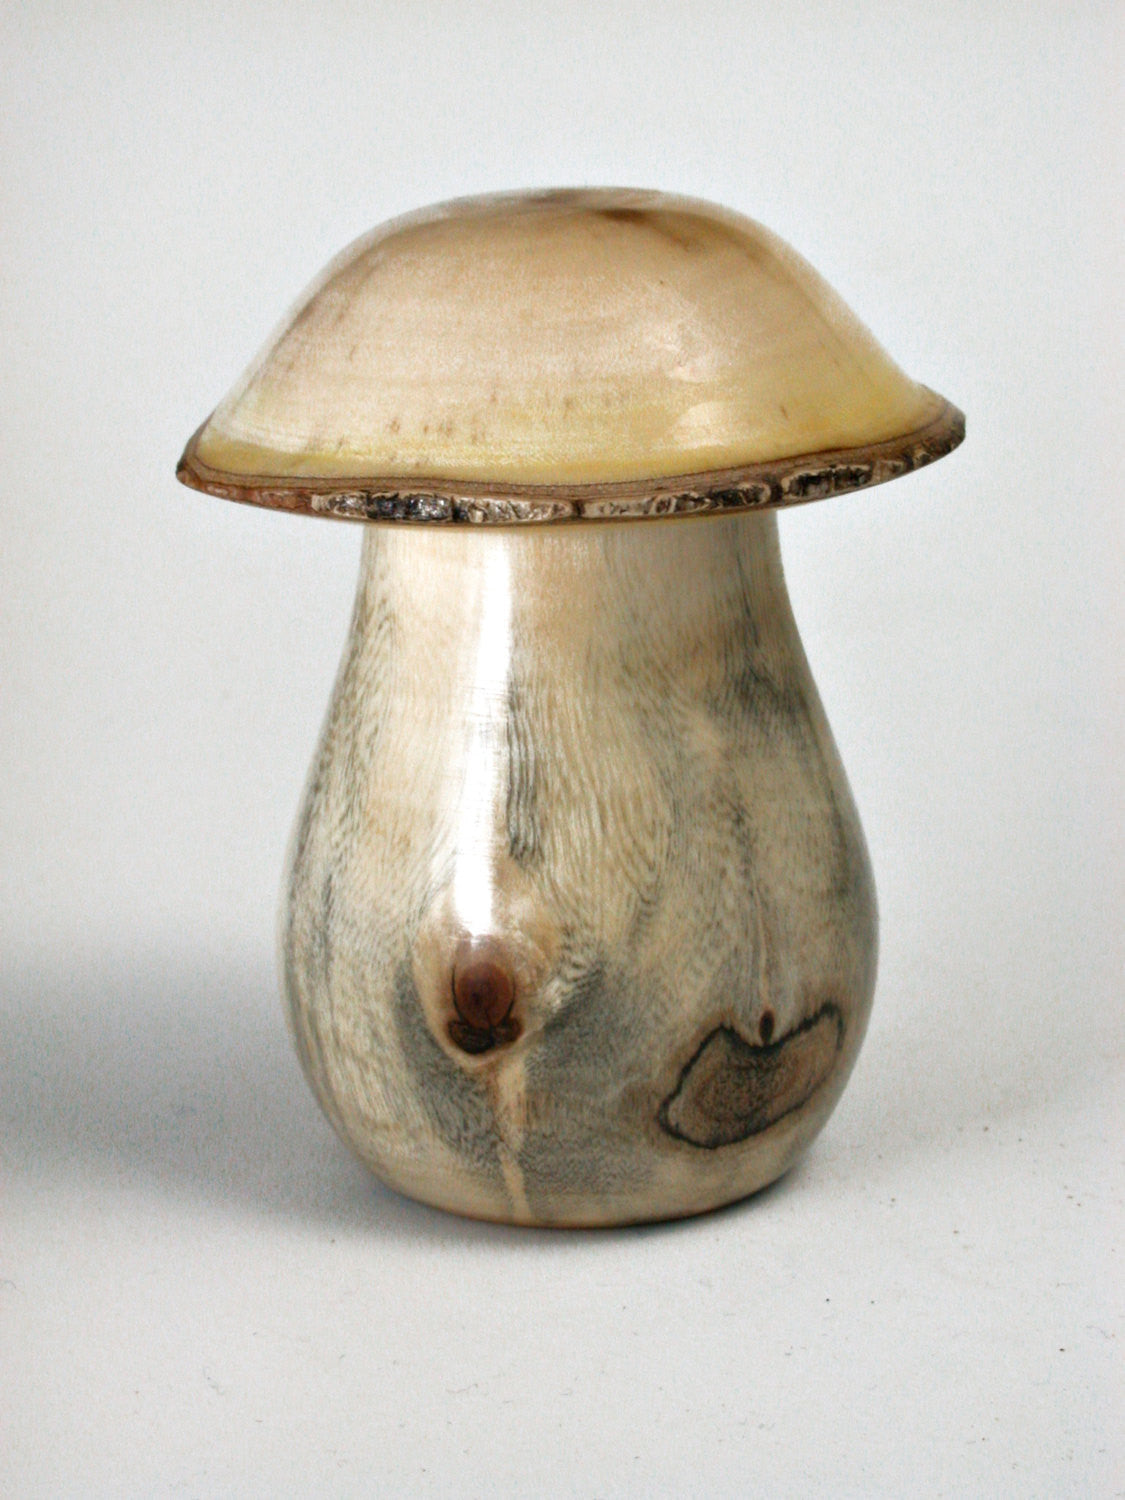 LV-1427 New Zealand Tarata Mushroom Shaped Trinket Box, Toothpick Holder, Jewelry Box-SCREW CAP